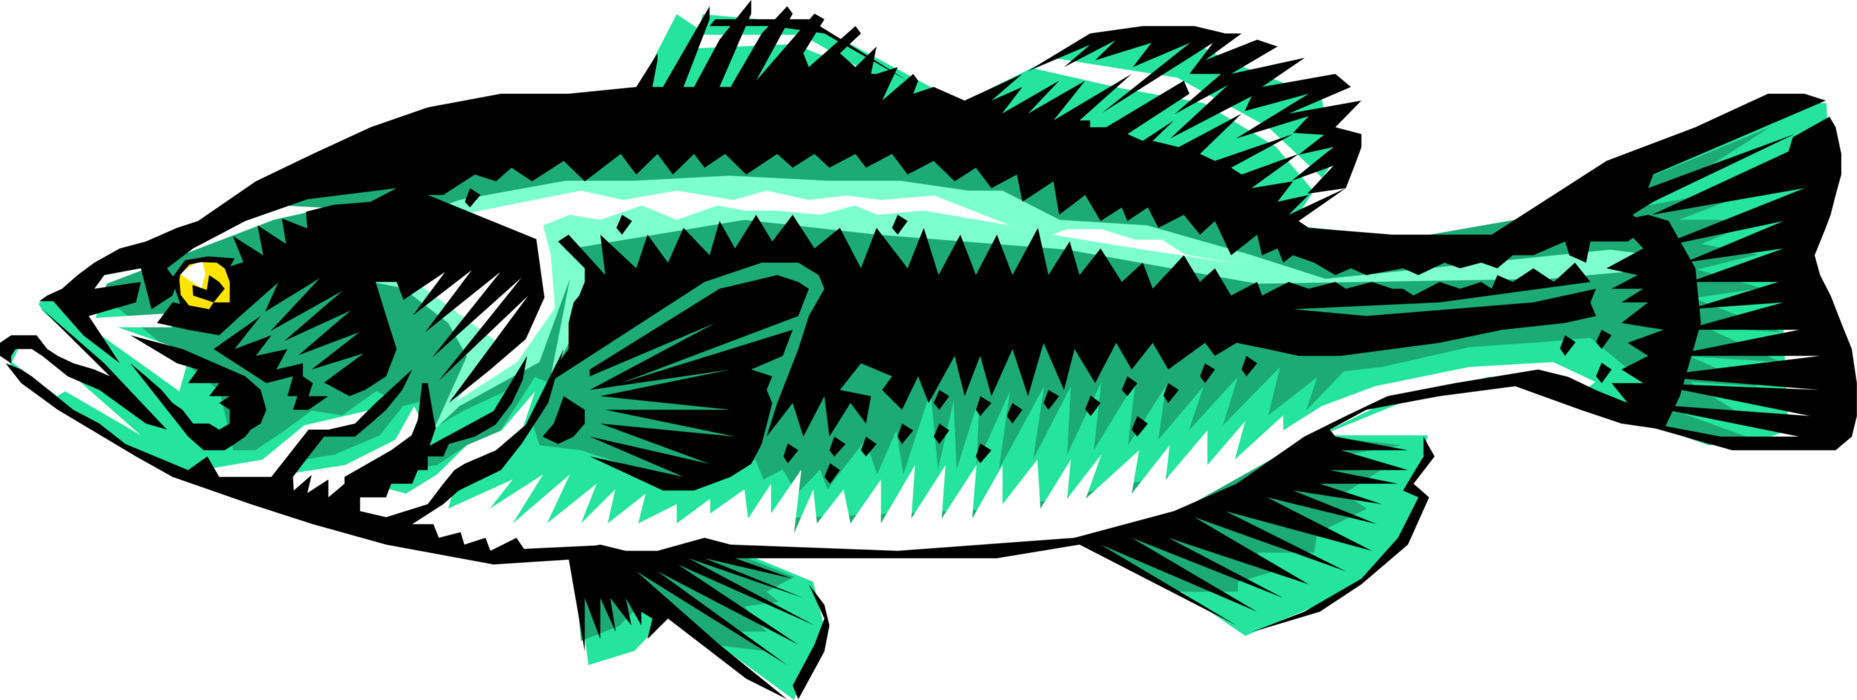 Vector Illustration of Freshwater Gamefish Largemouth Bass Fish